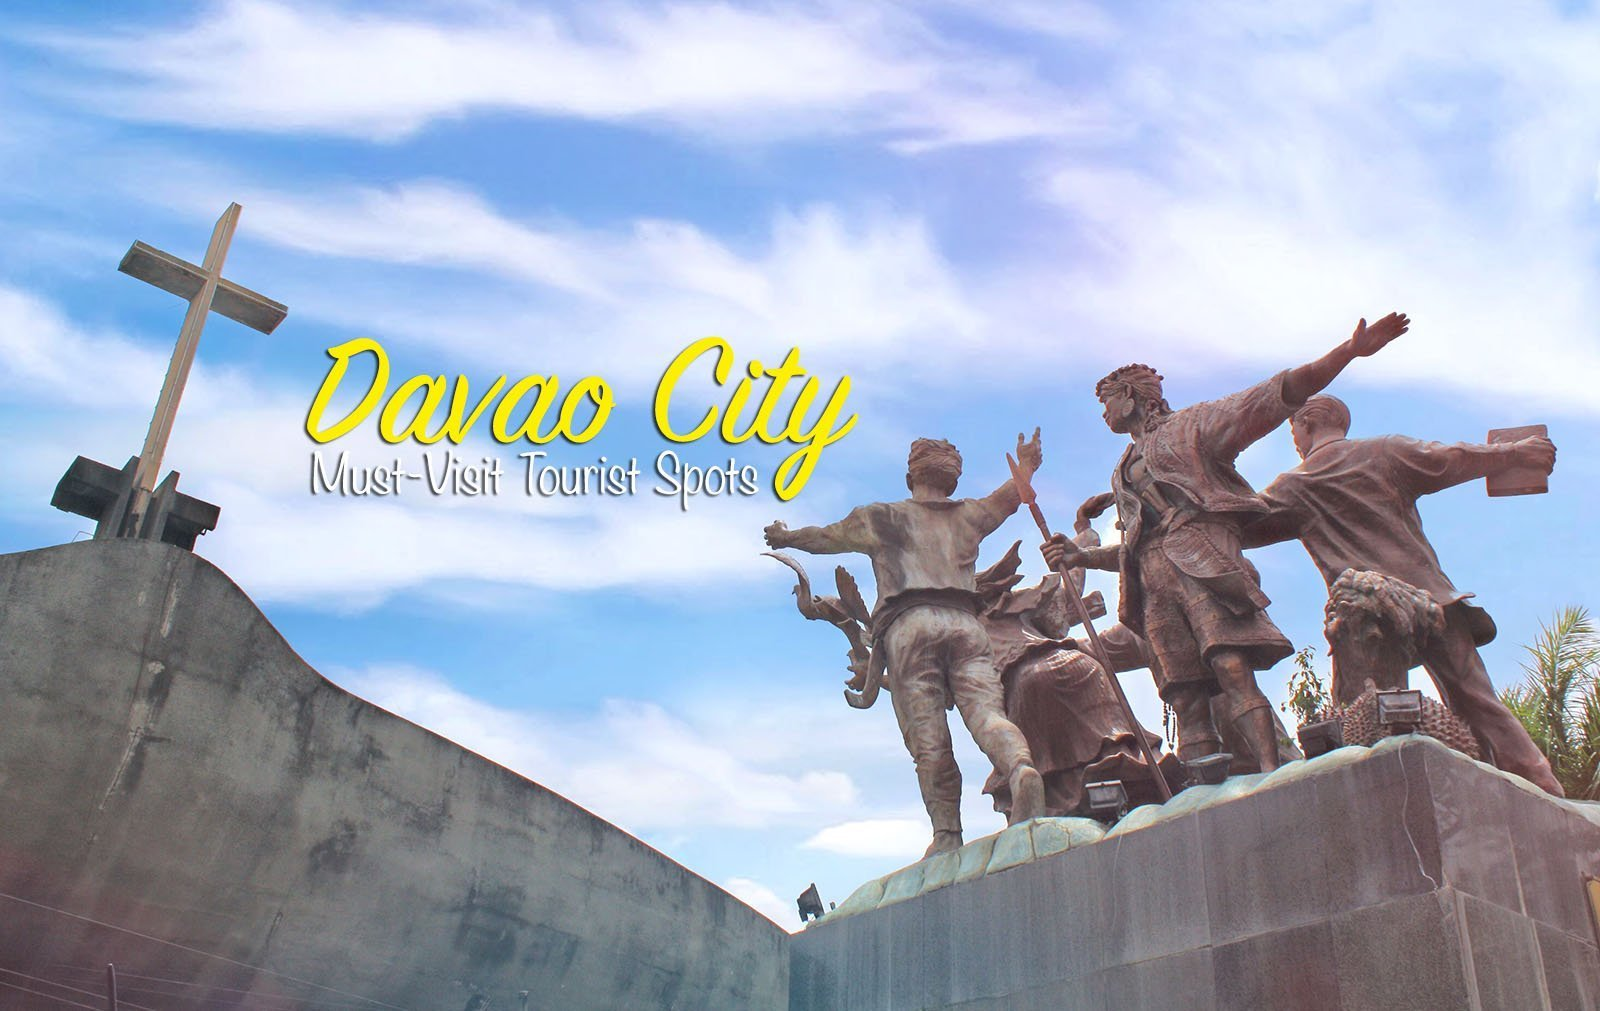 14 BEST Places to Explore in Davao City